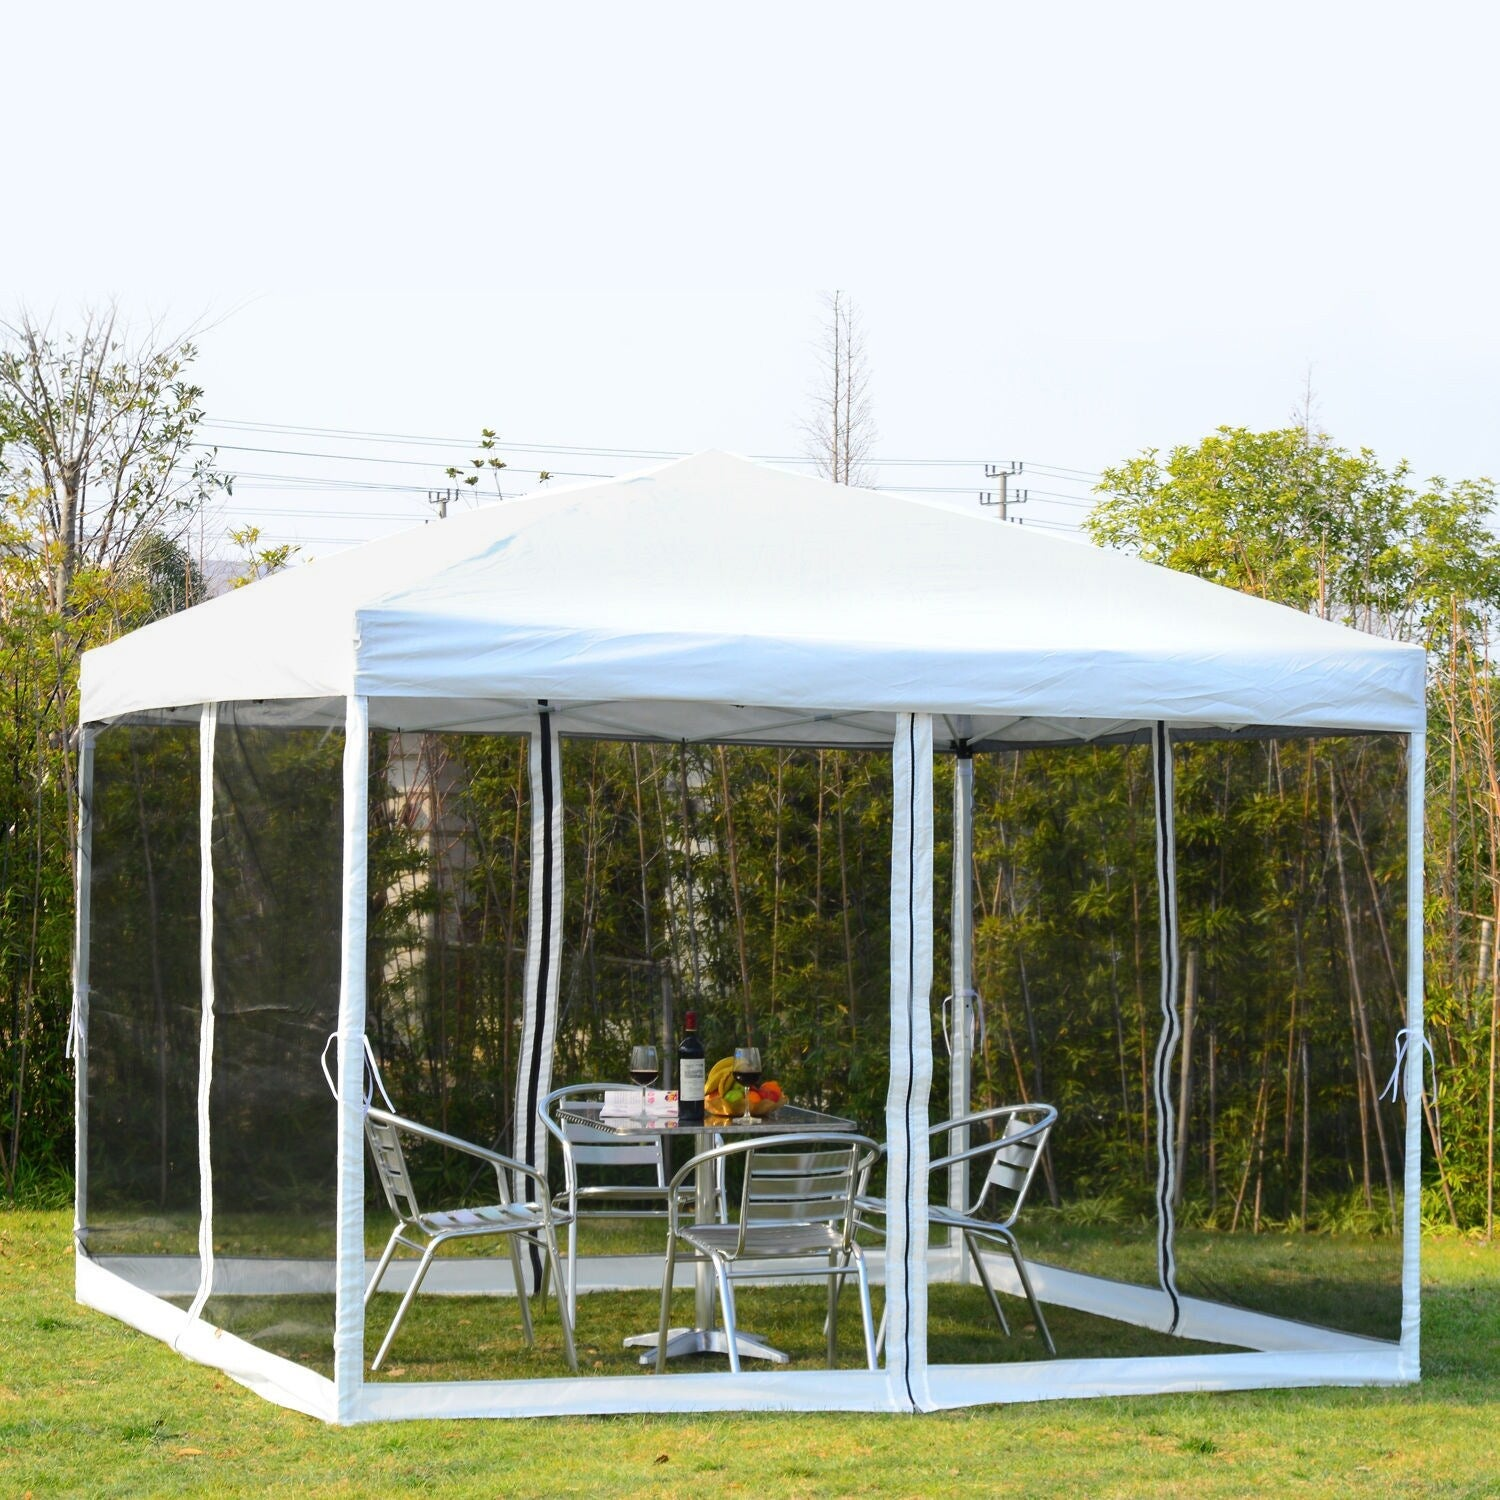 Outsunny 10 X 10 Backyard Pop Up Canopy Shade Tent Overstock 18004812